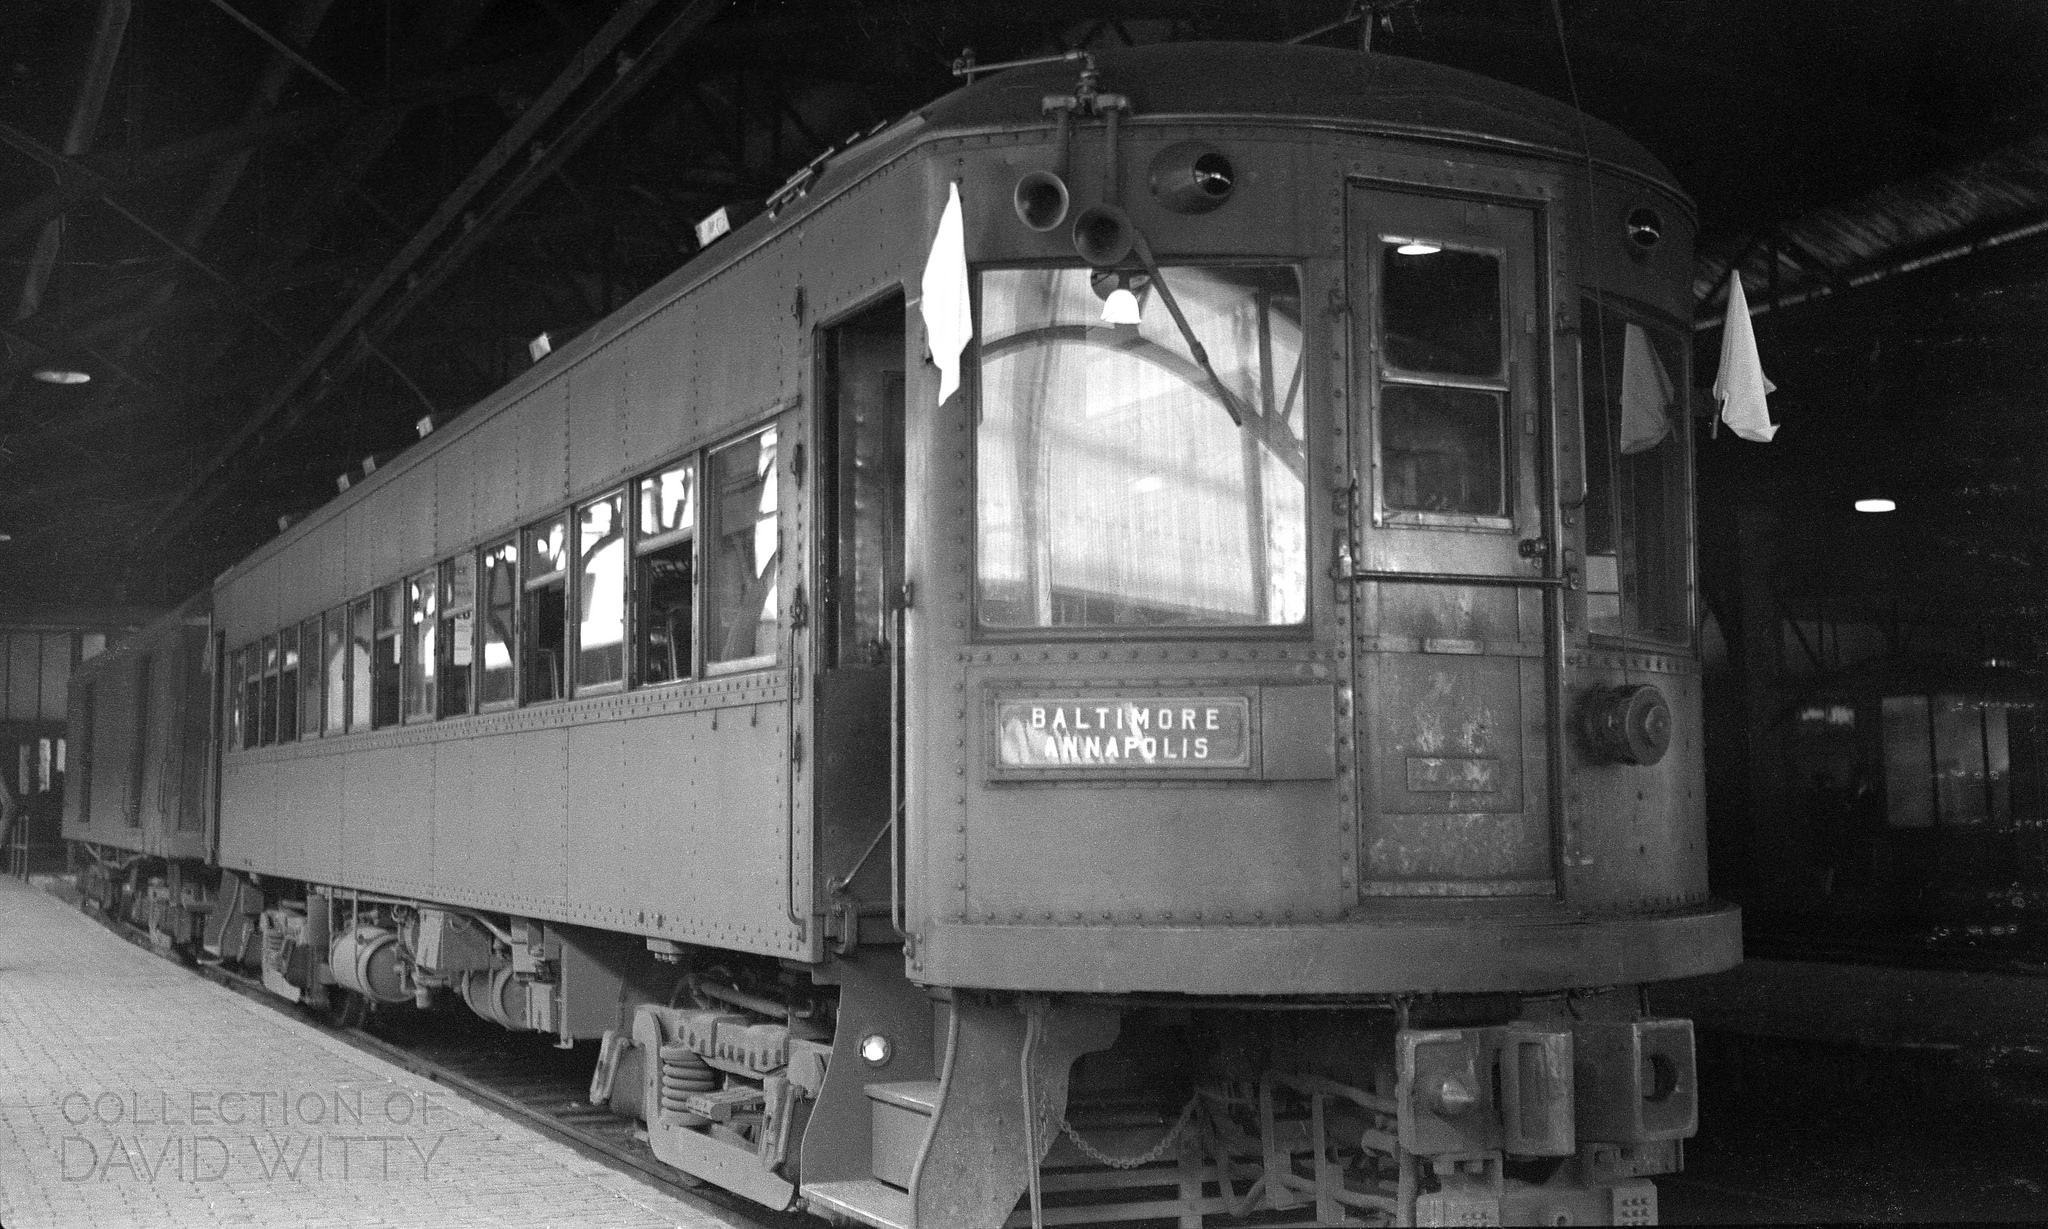 Baltimore & Annapolis Railroad Car #201 at Camden Station. Baltimore, Maryland. Date: May 25, 1942. Source: David Witty Collection.